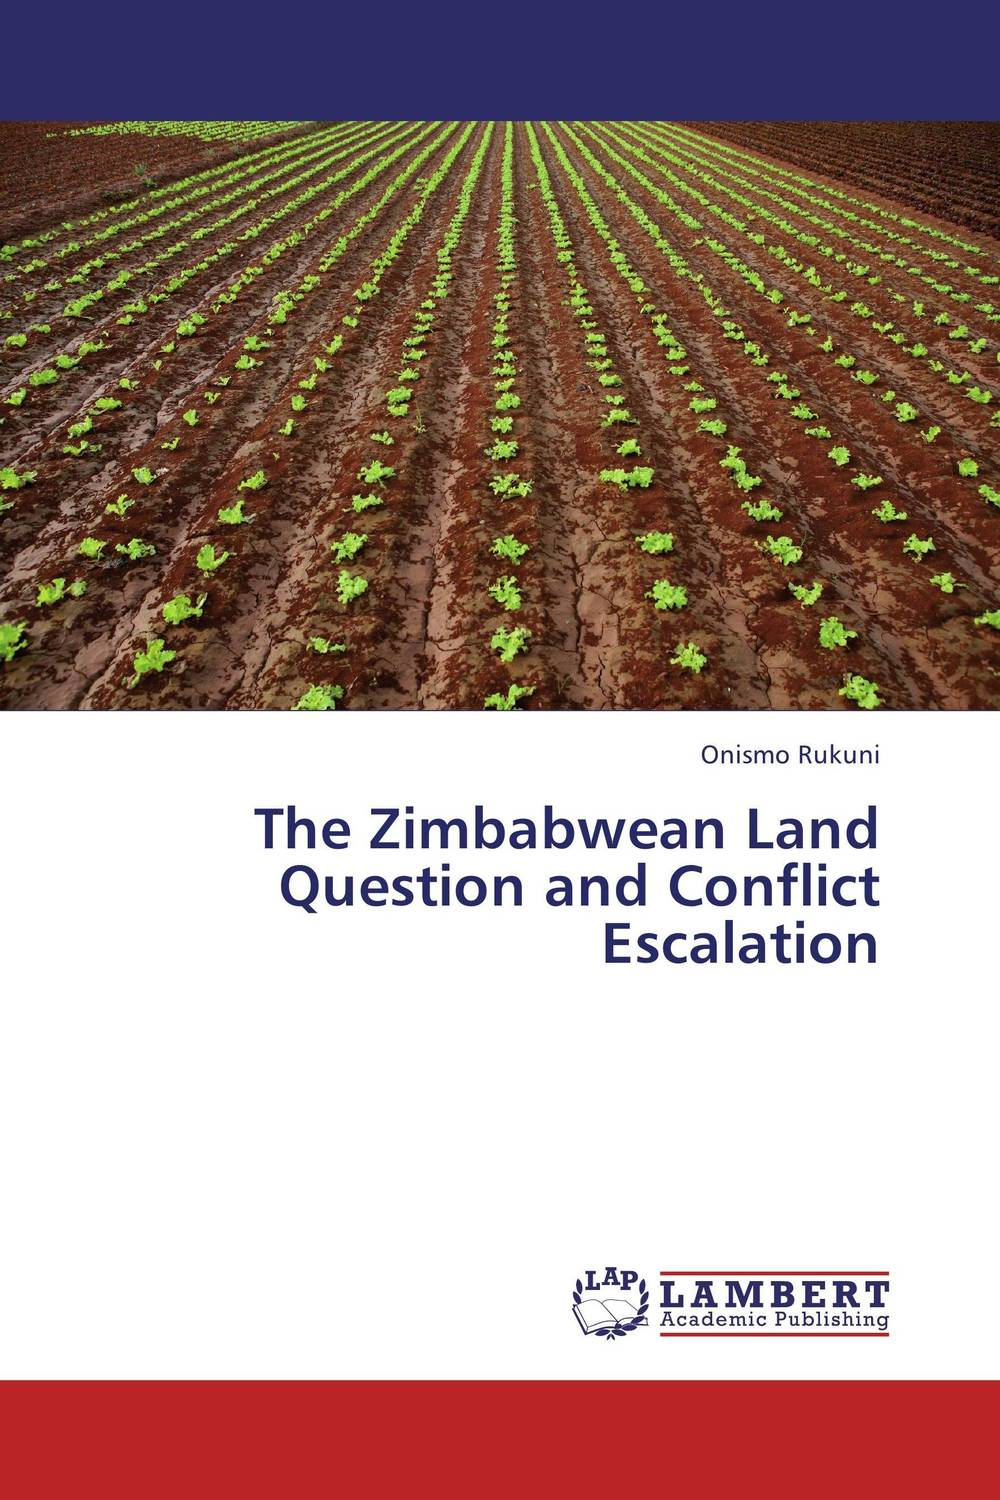 The Zimbabwean Land Question and Conflict Escalation on the distribution of information structures and focal points